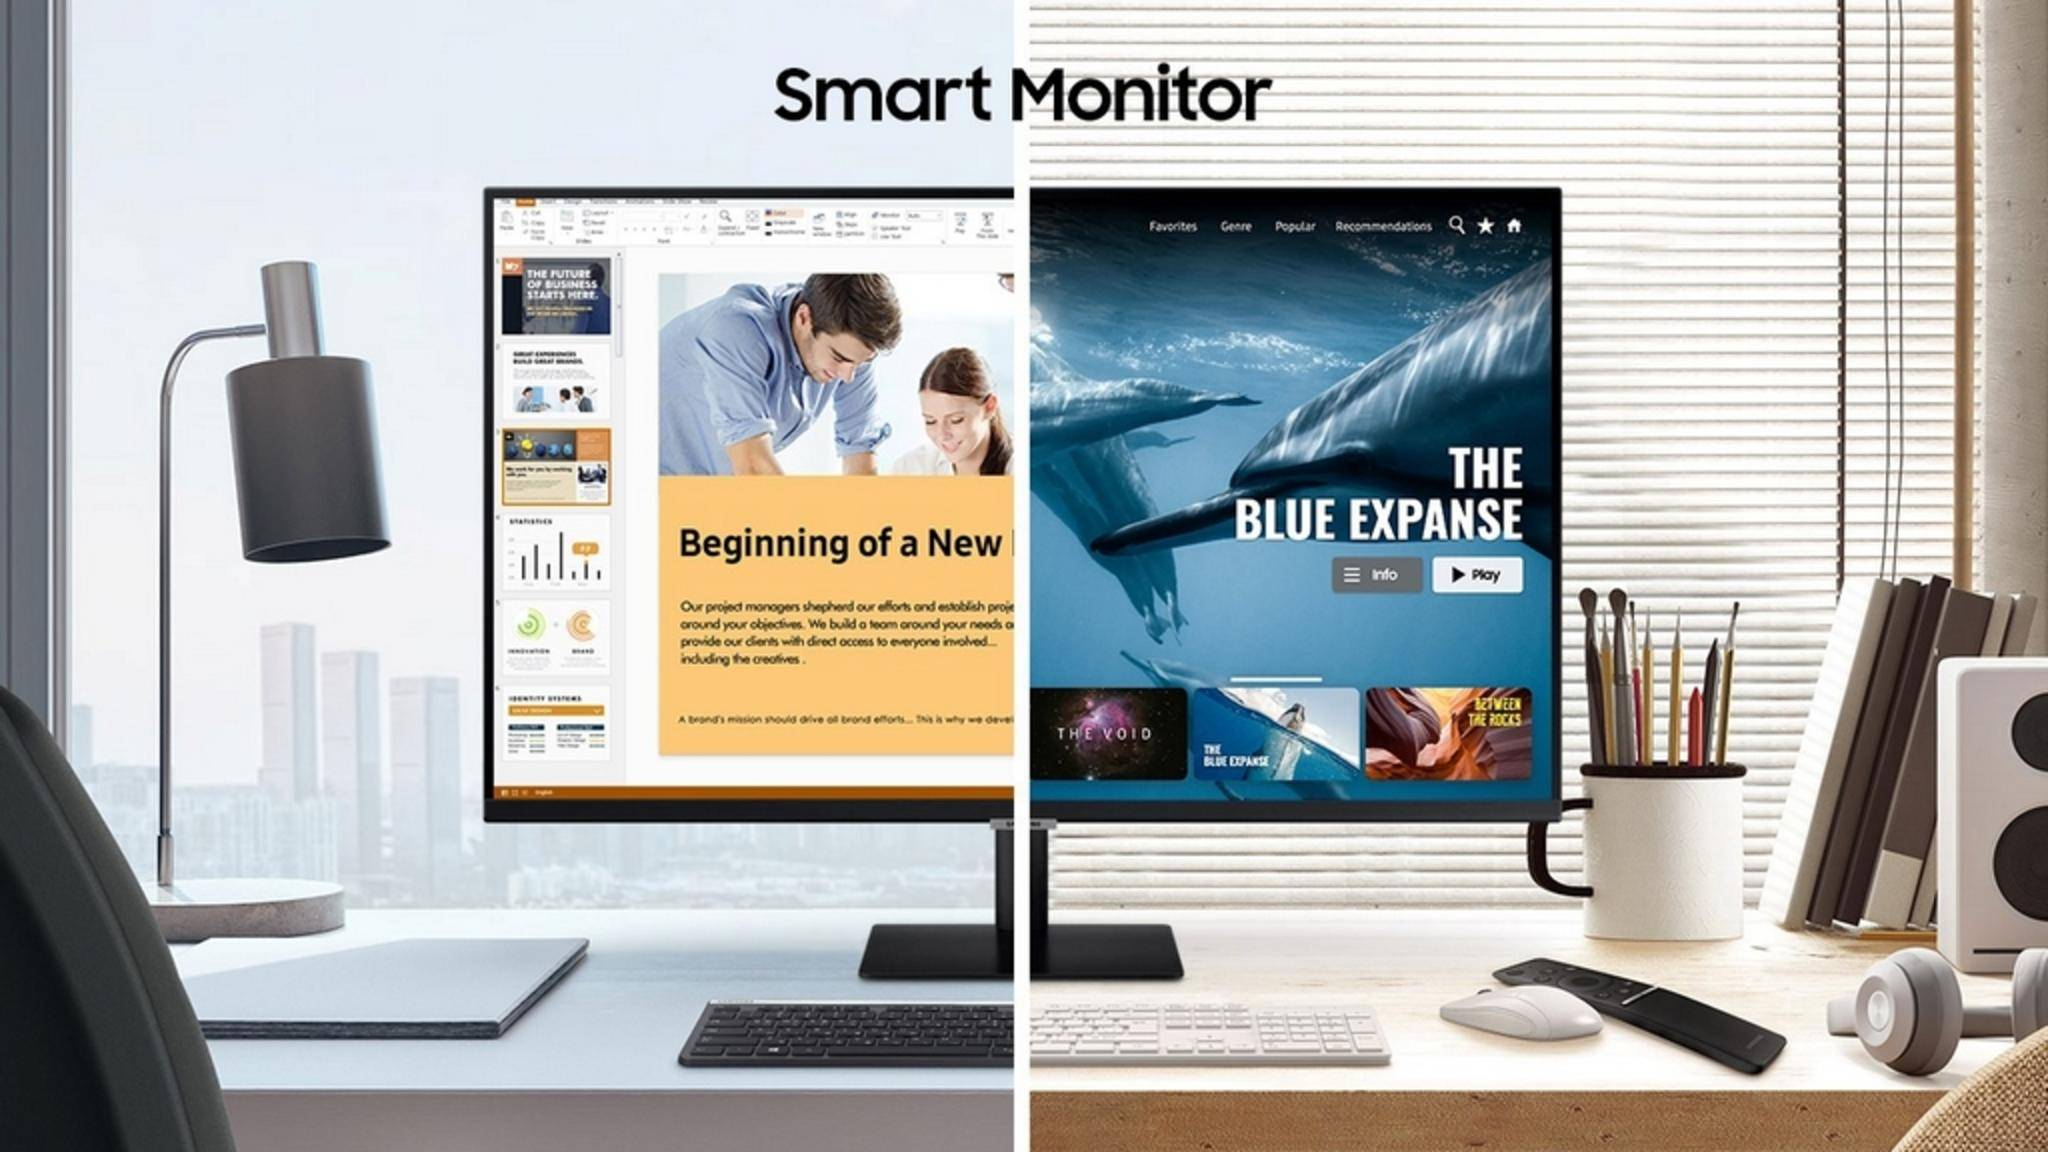 Samsung-Smart-Monitor